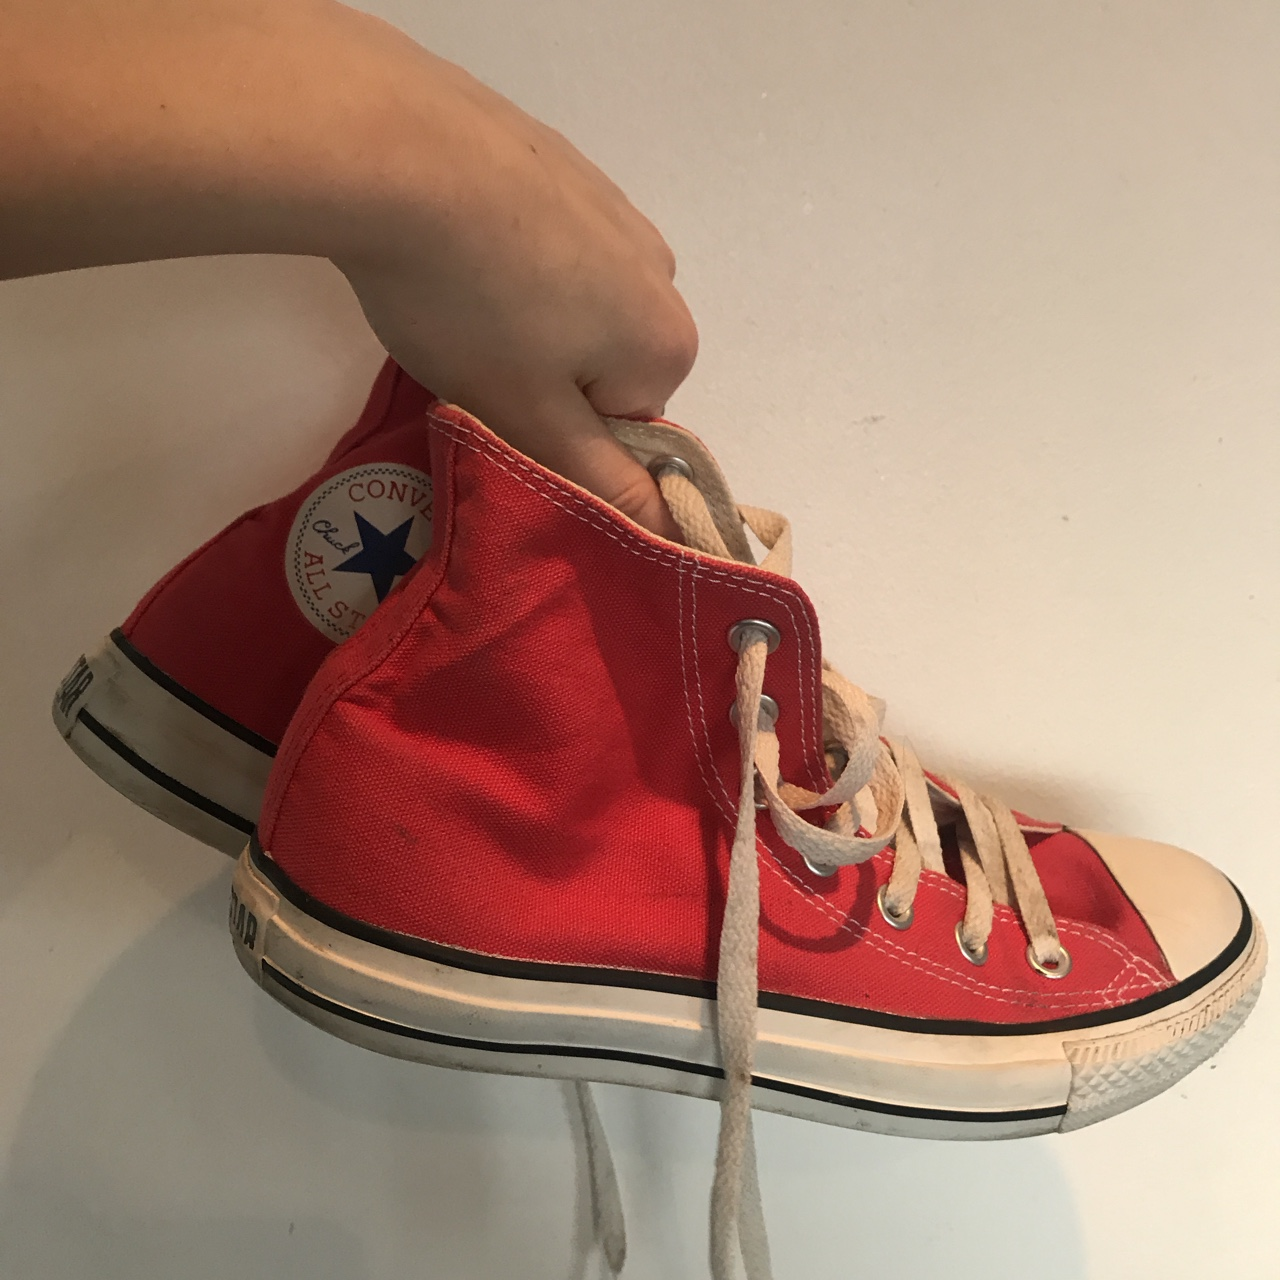 Red high top converse all star. Red chuck taylors Depop